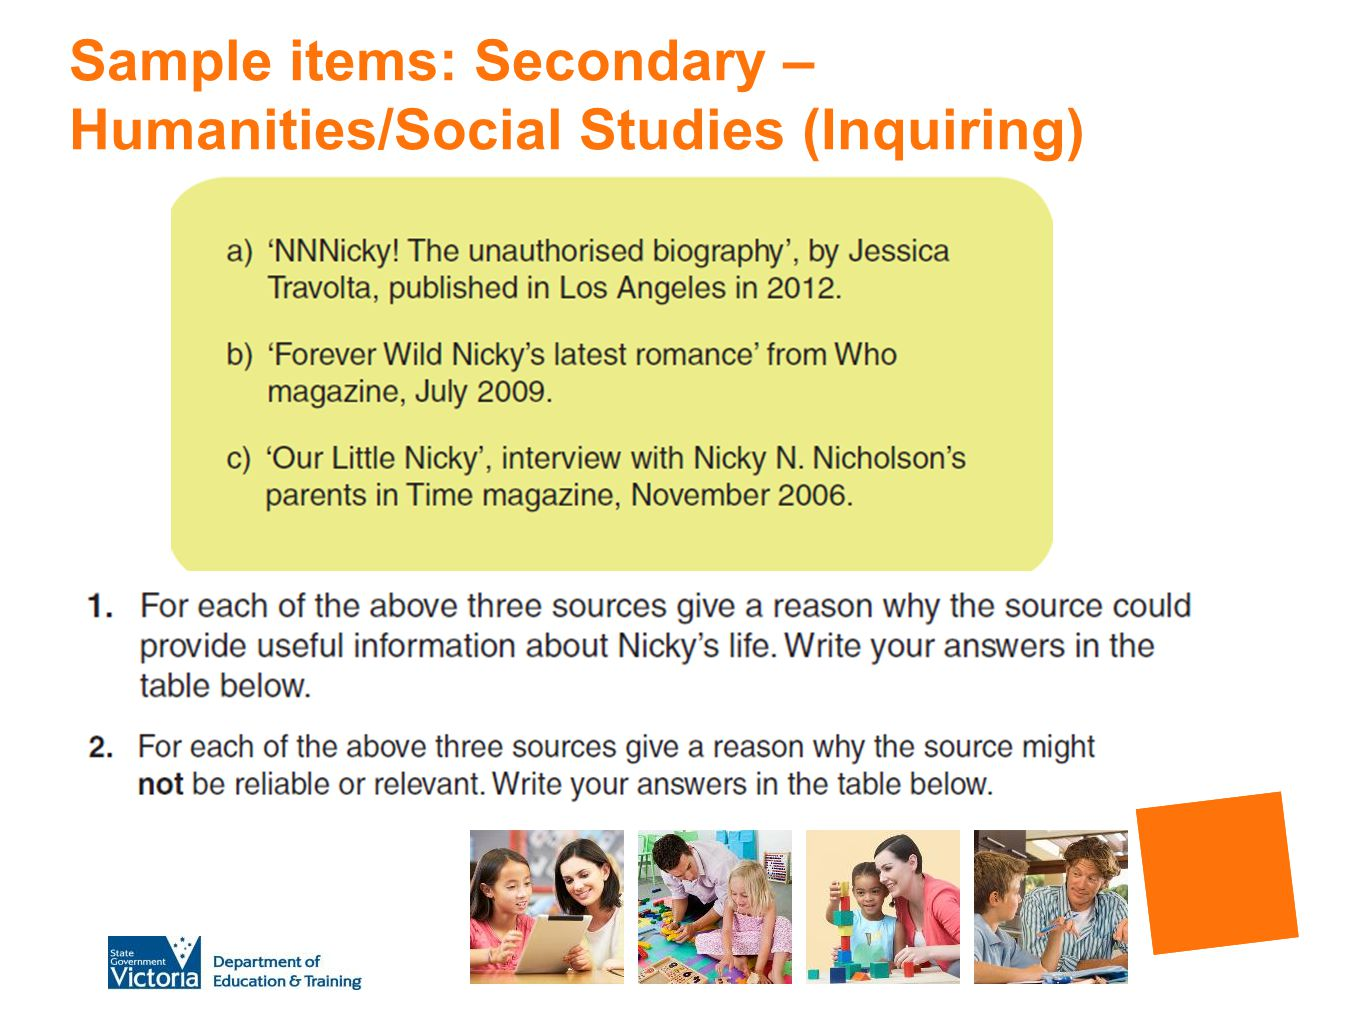 Sample items: Secondary – Humanities/Social Studies (Inquiring)